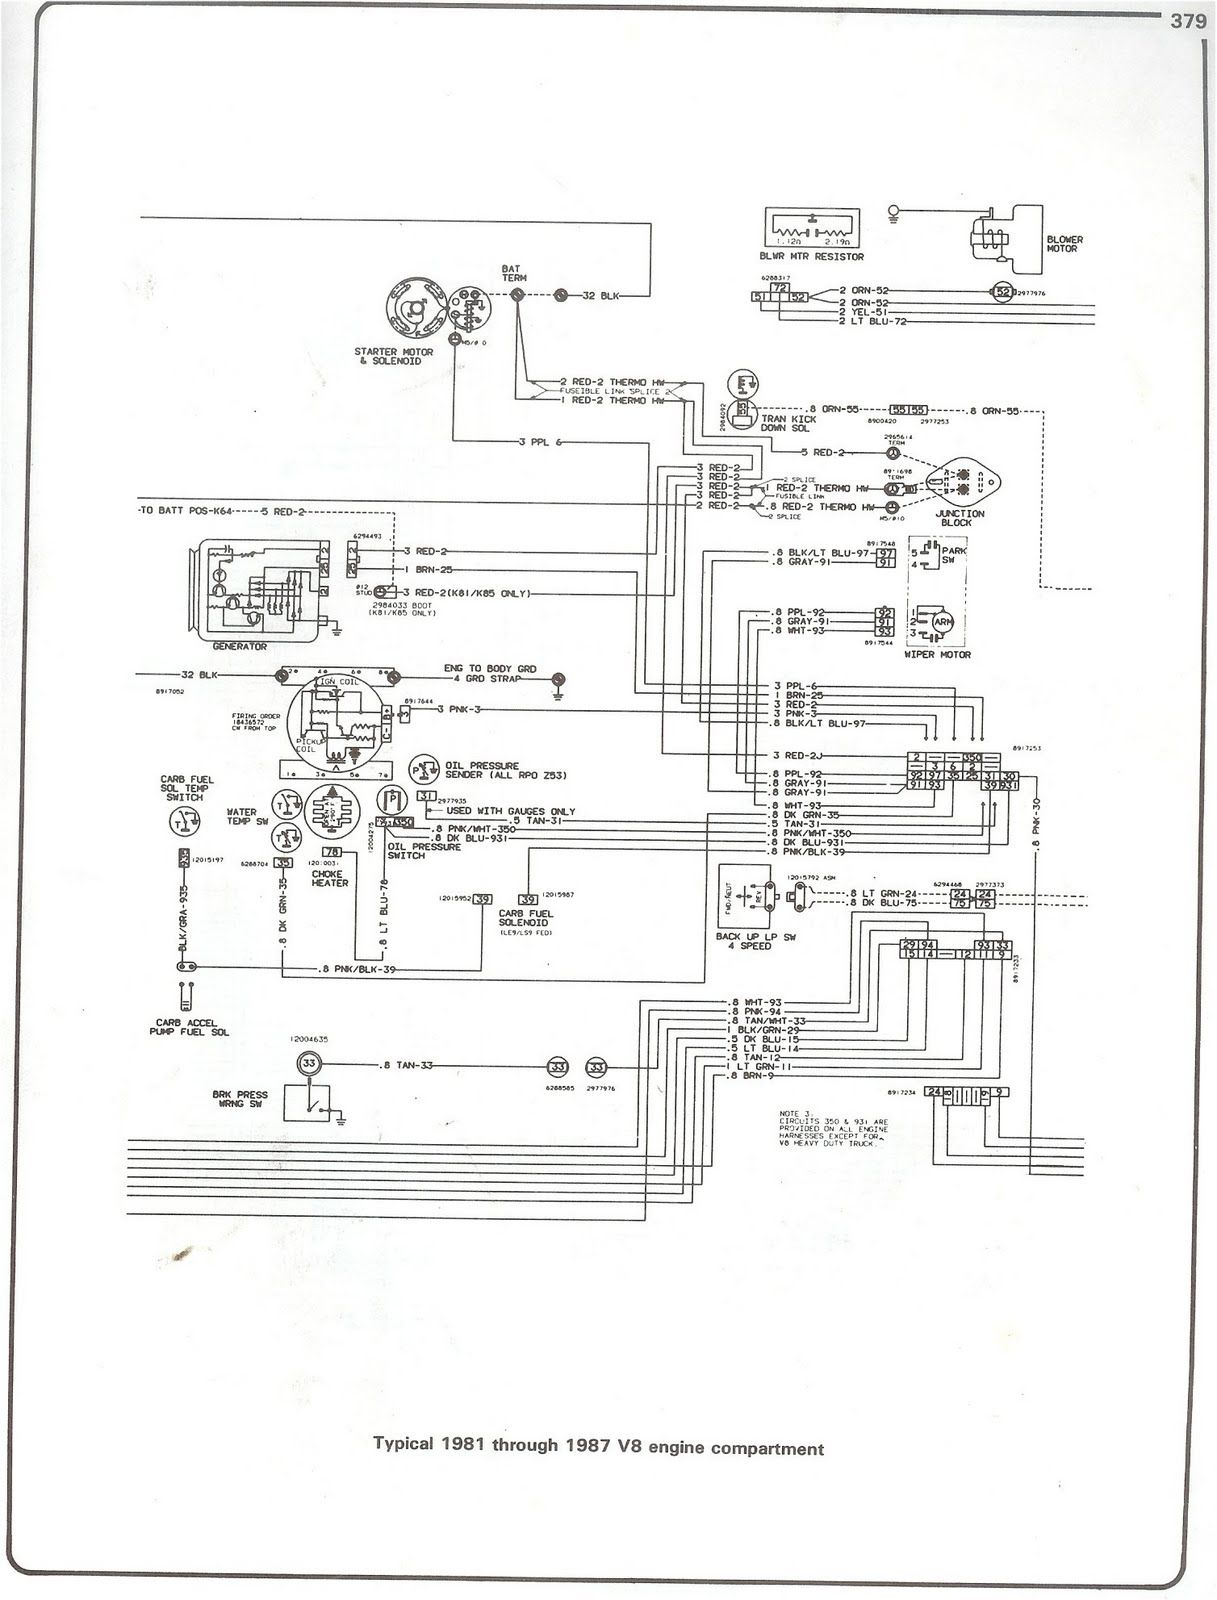 This Is Engine Compartment Wiring Diagram For 1981 Trough 1987